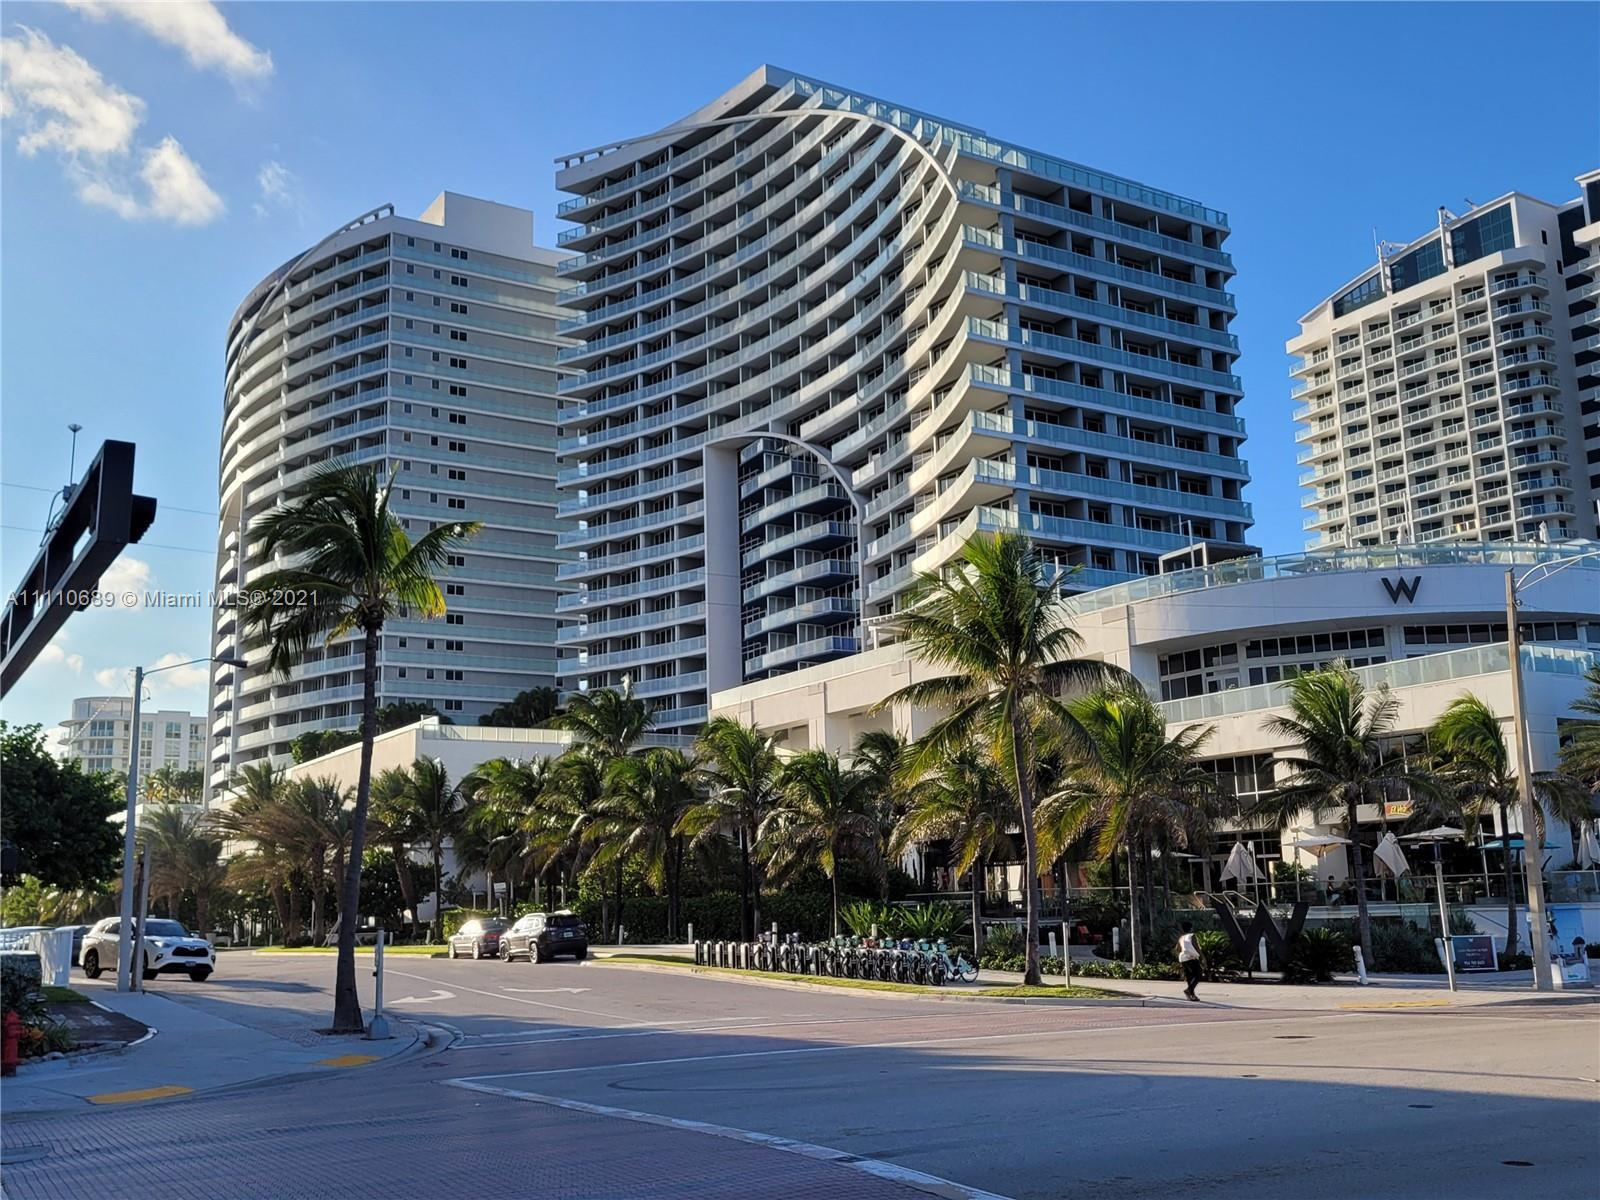 Ocean views and a resort lifestyle await you at the W residences! No short term rental restrictions.